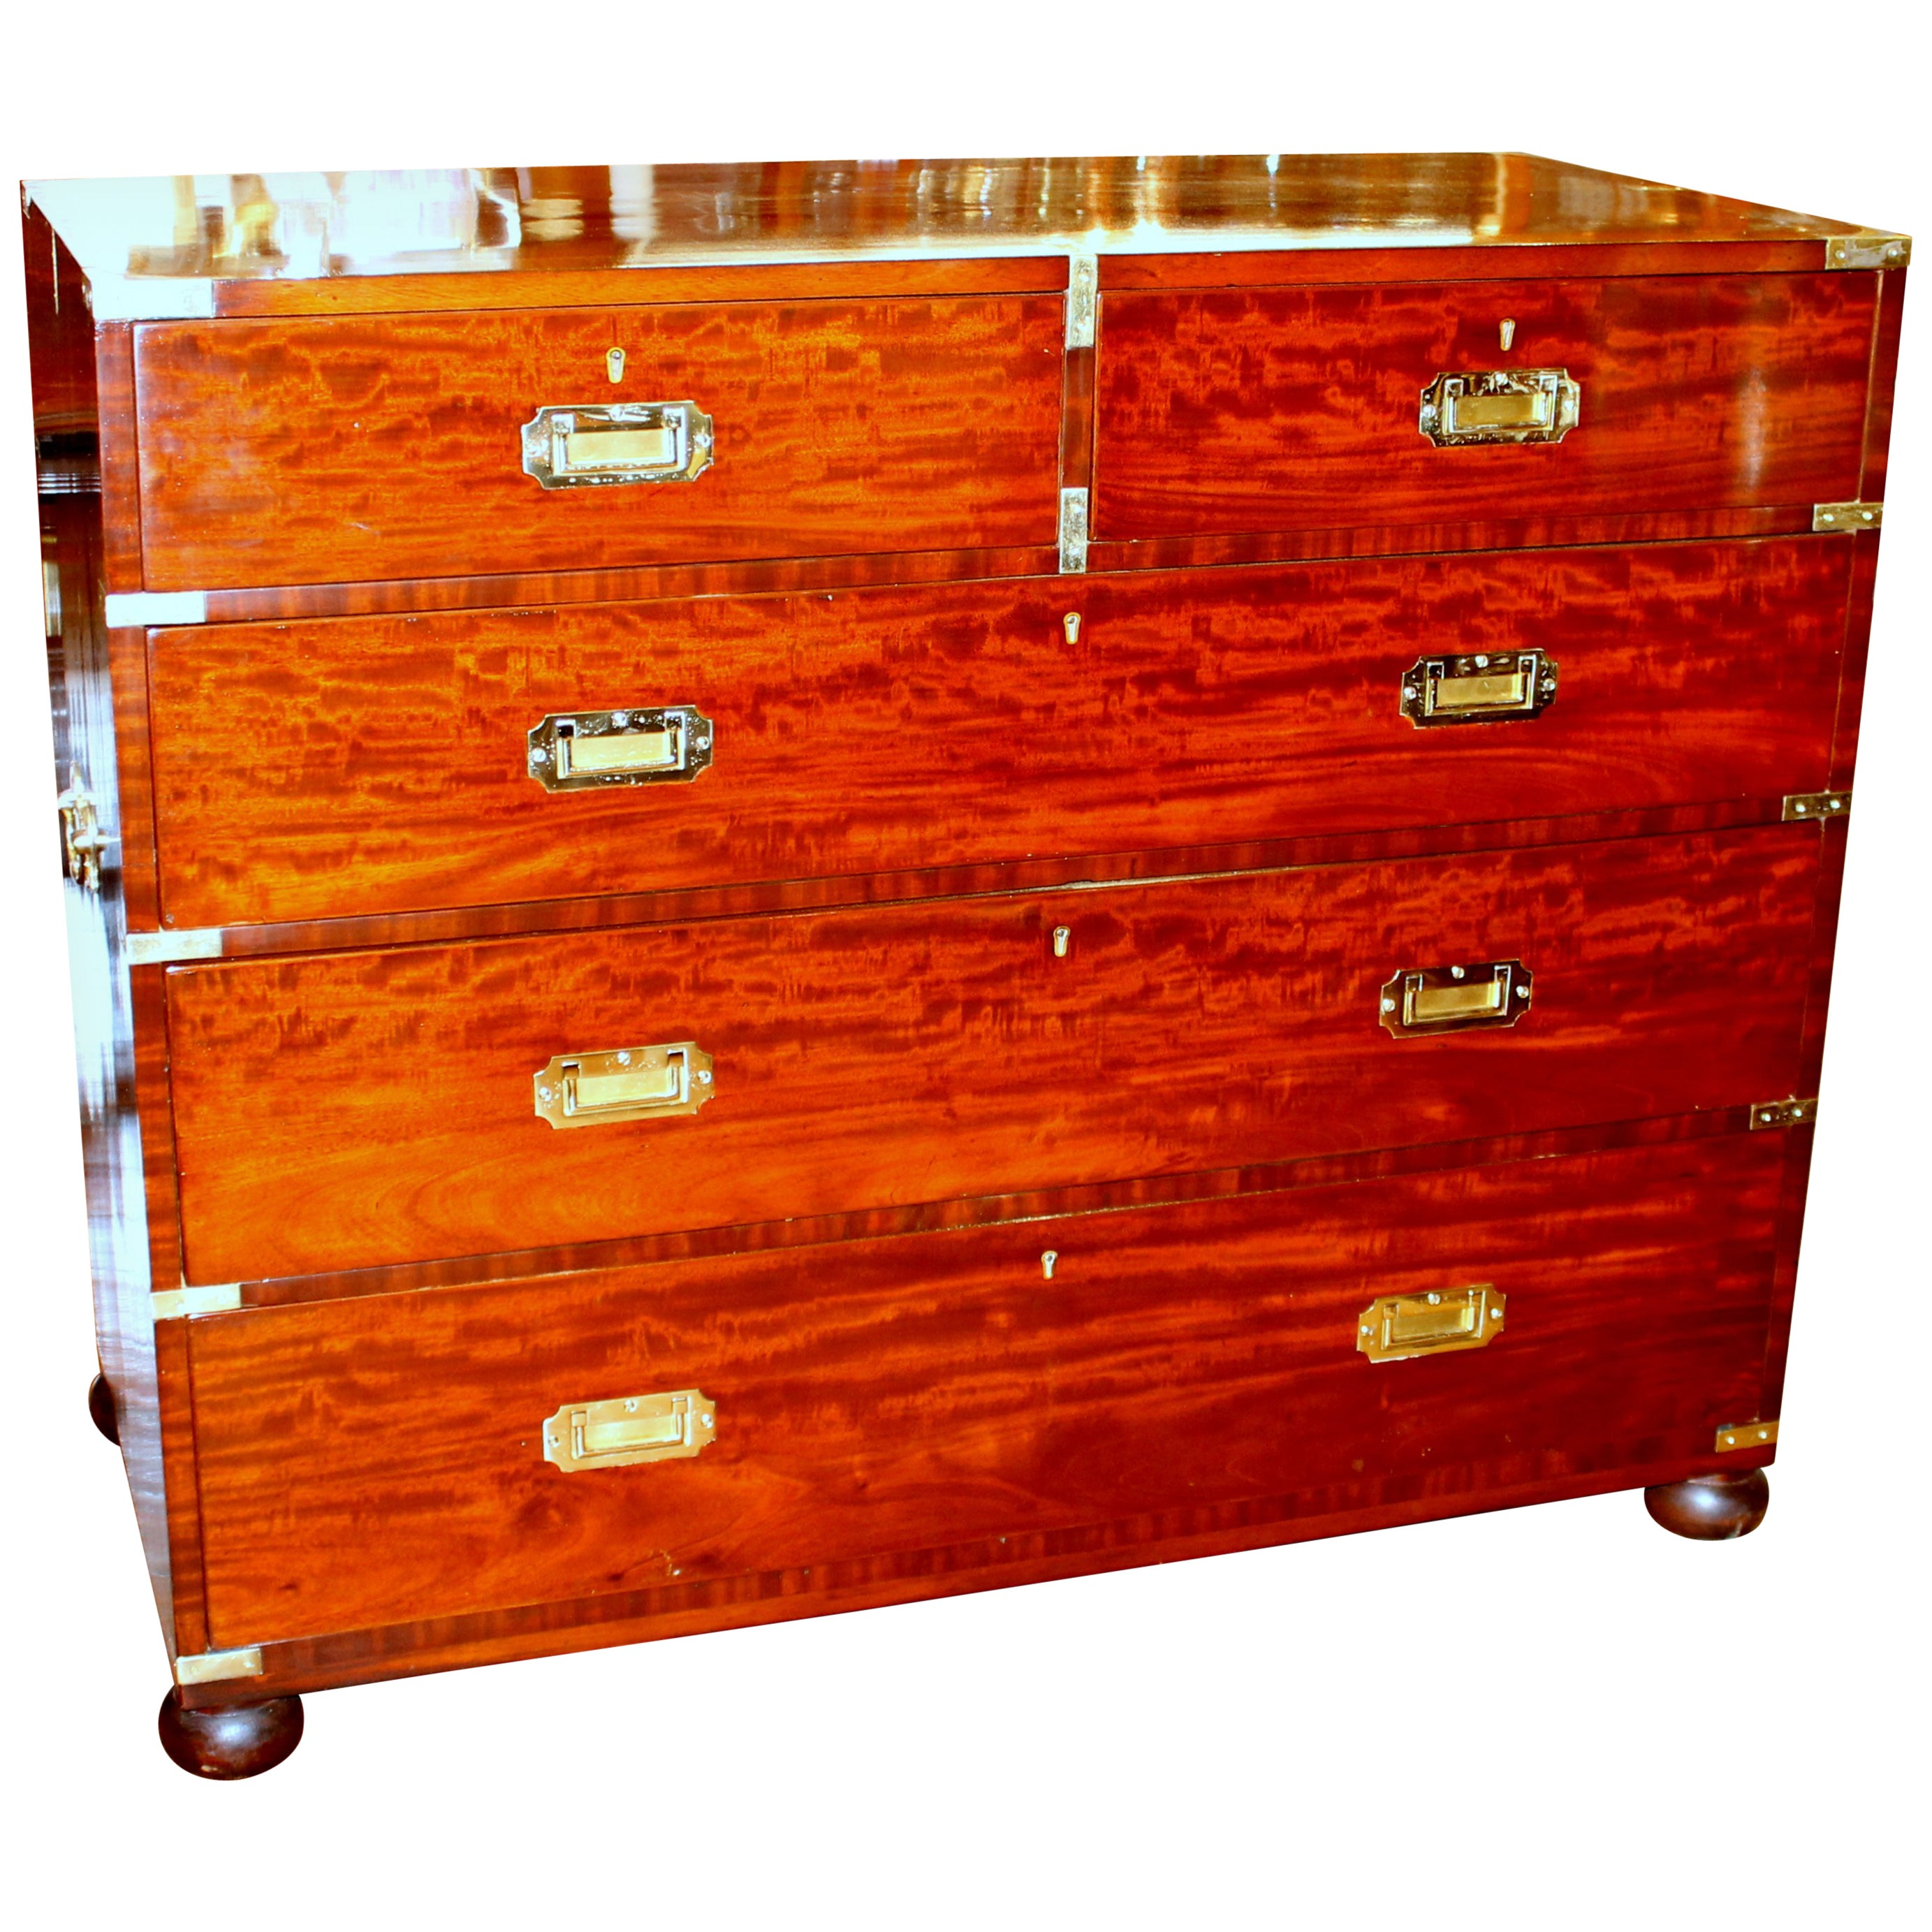 Antique English Inlaid Figured Mahogany Campaign/Military Style Chest of Drawers